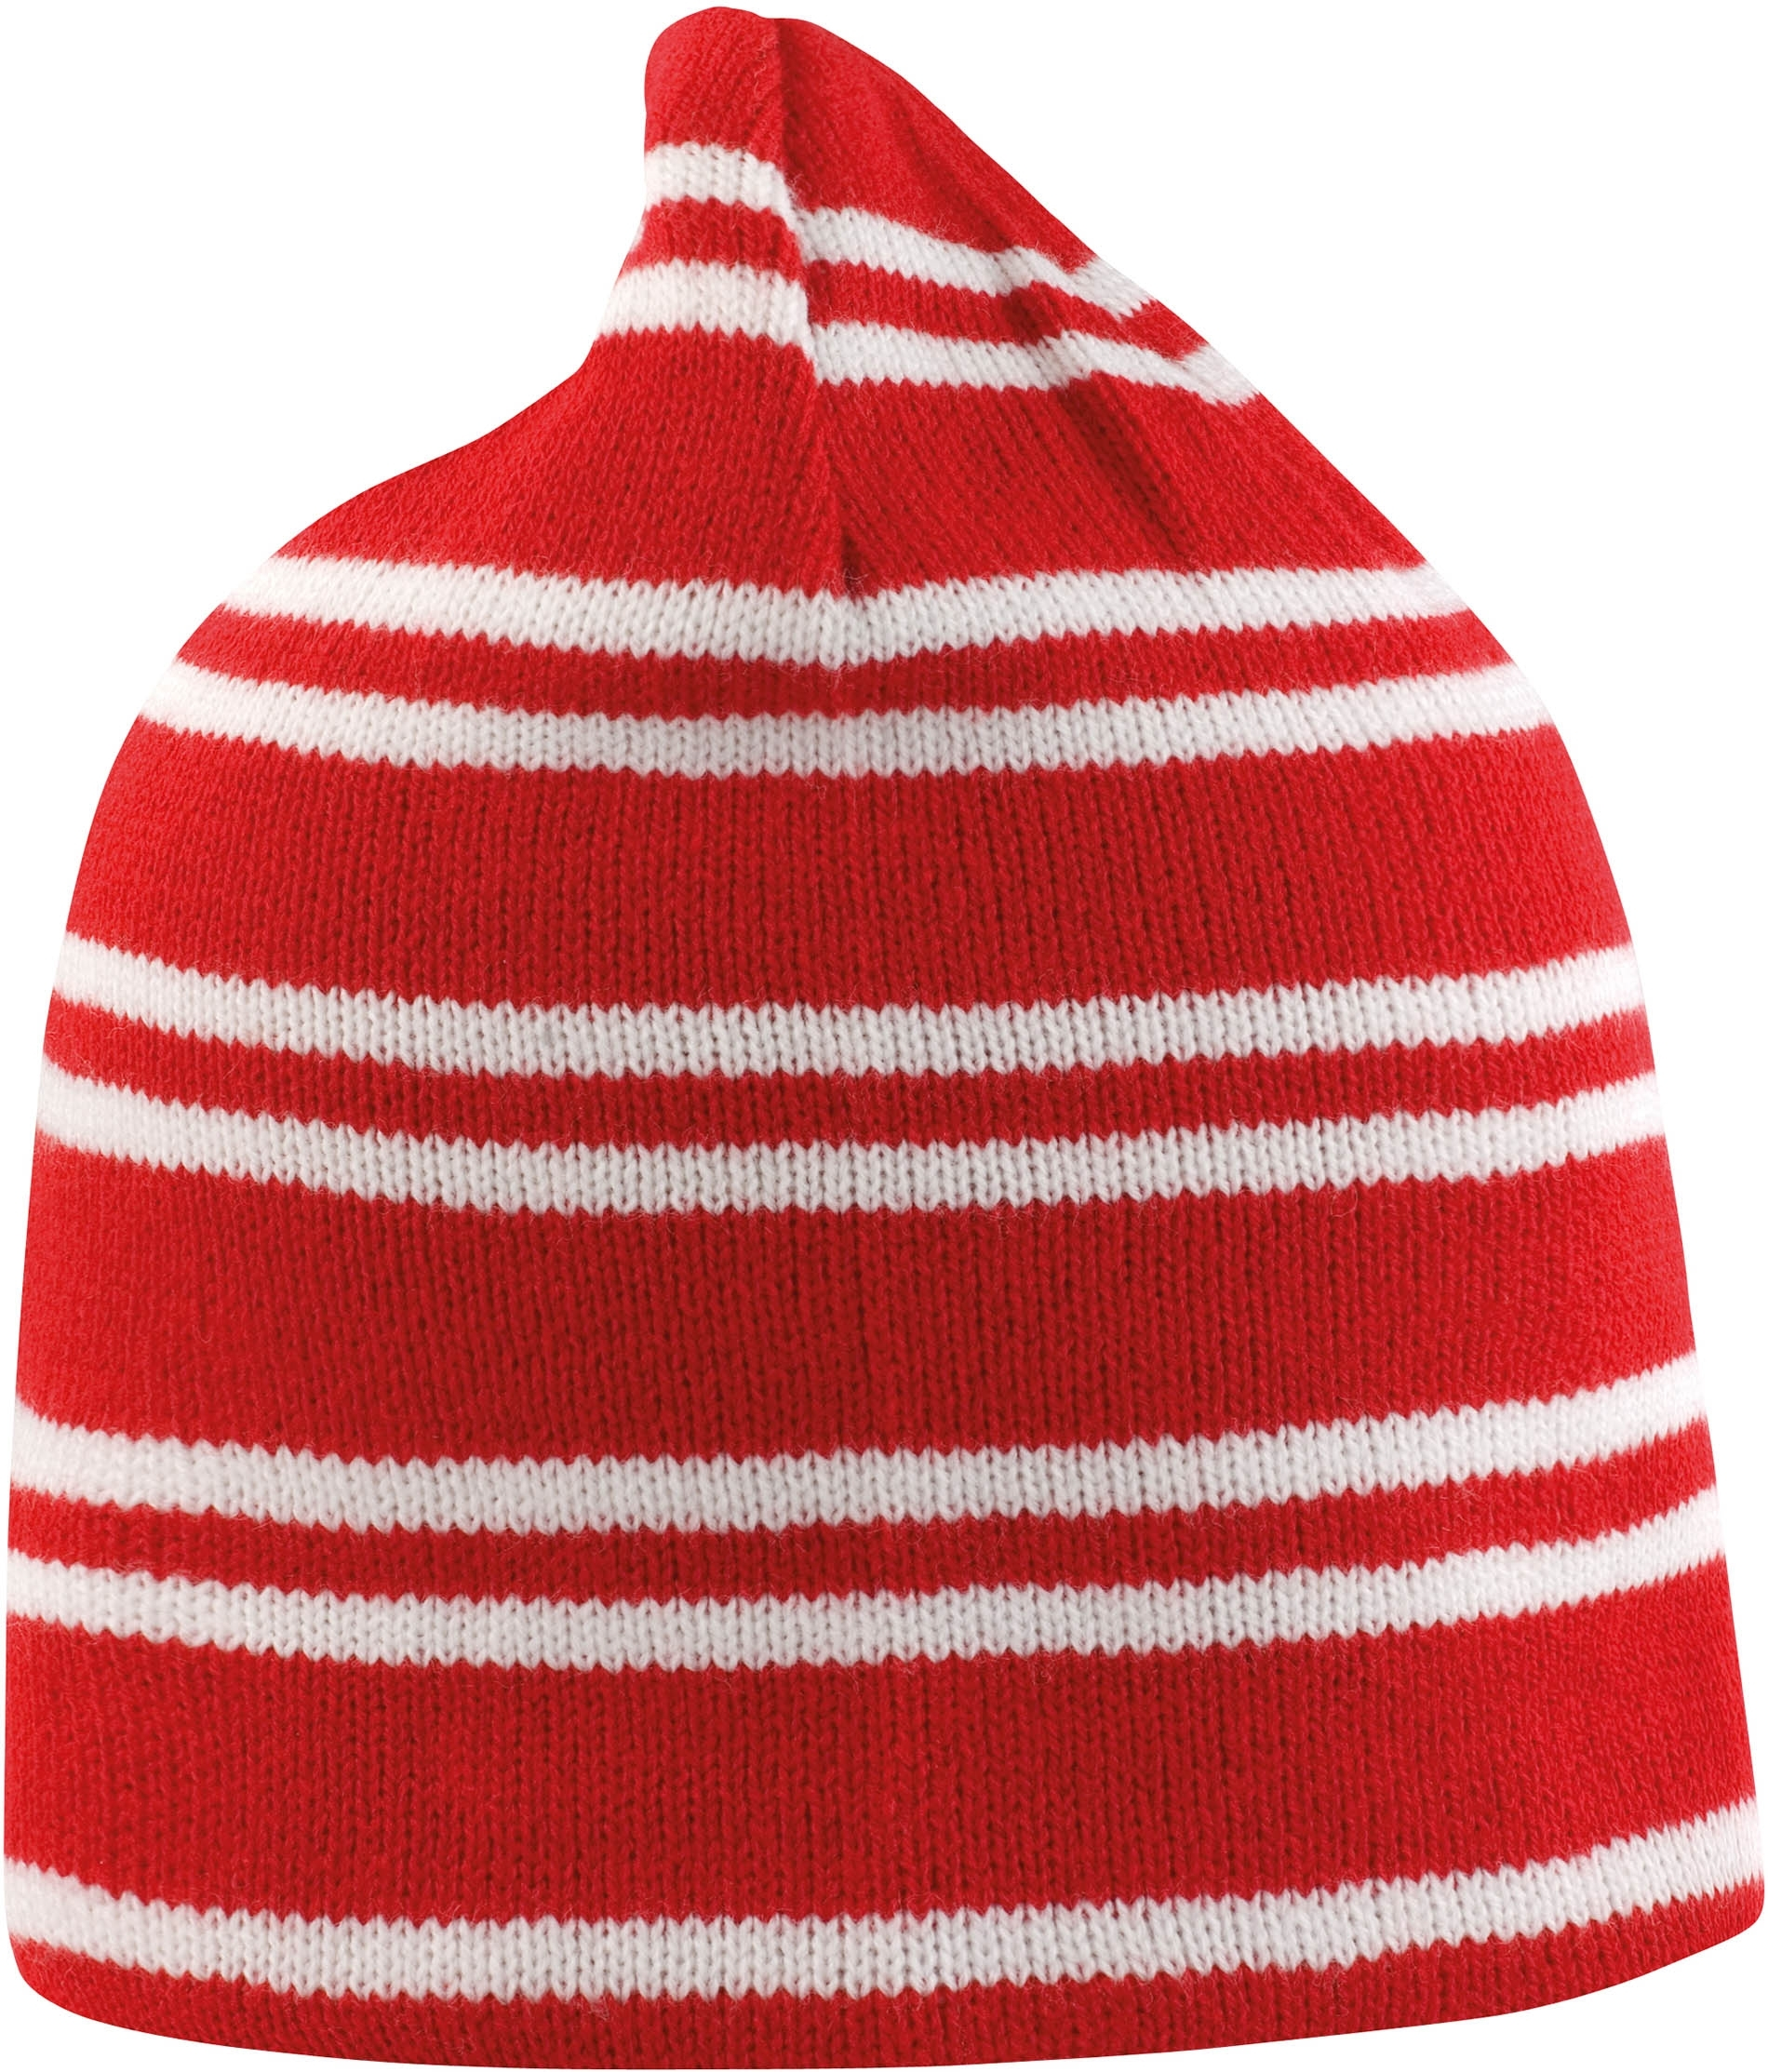 Bonnet réversible Team Red / White / Red Rouge